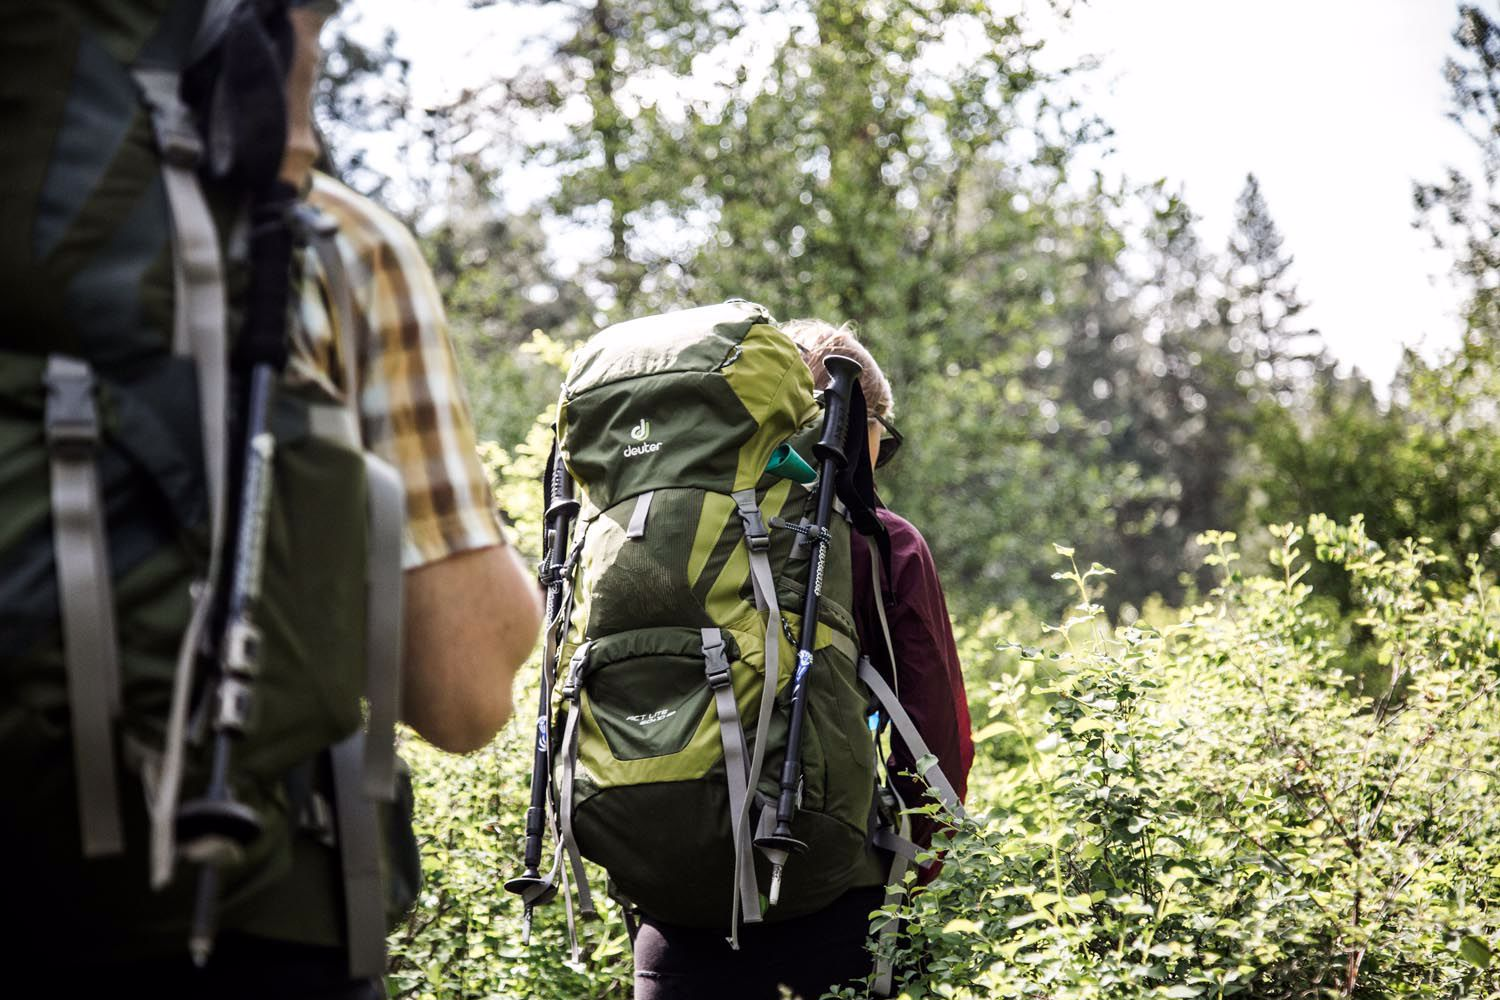 Choosing a tent for lightweight backpacking